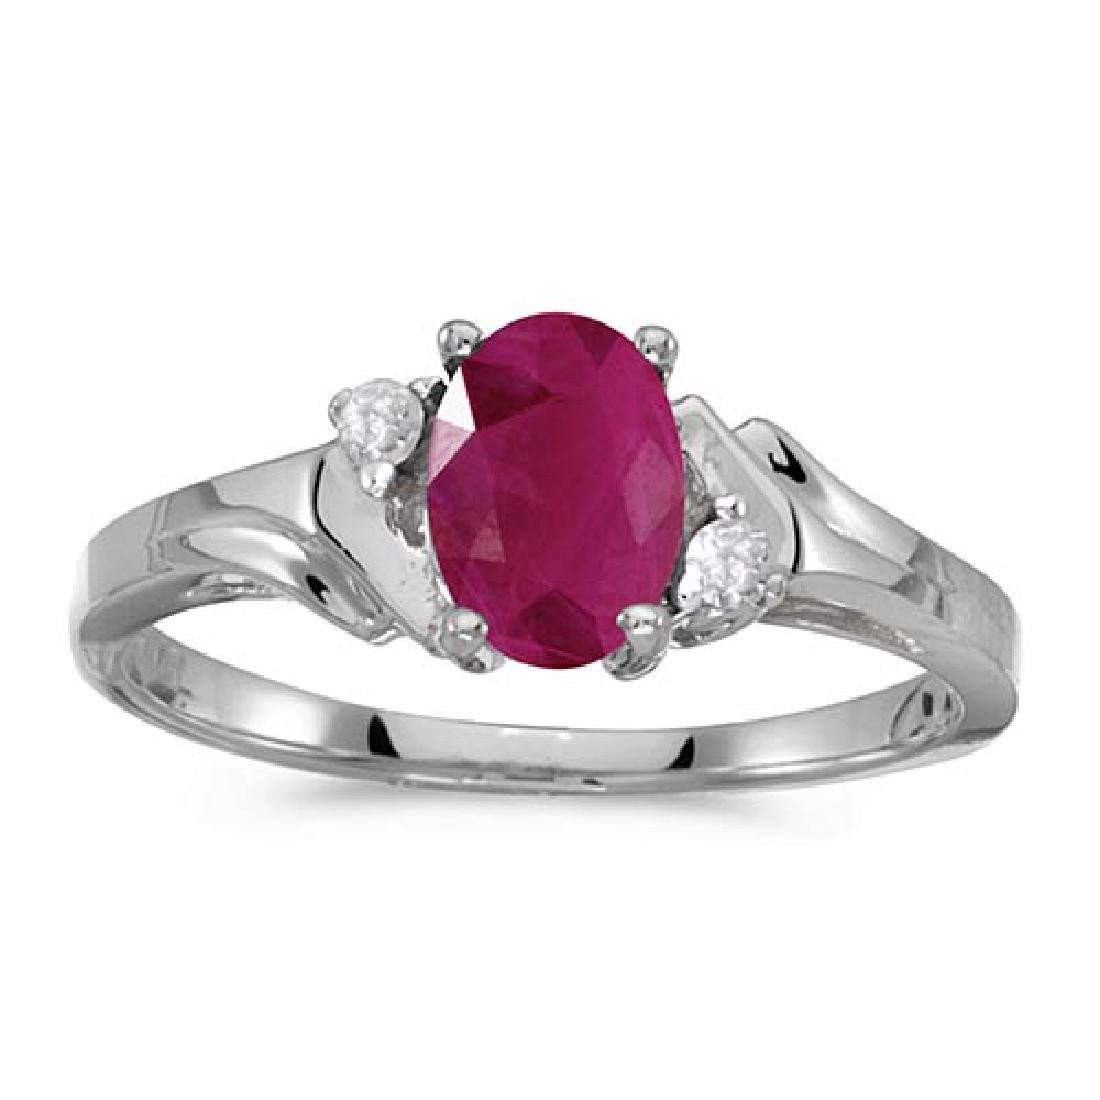 Certified 14k White Gold Oval Ruby And Diamond Ring